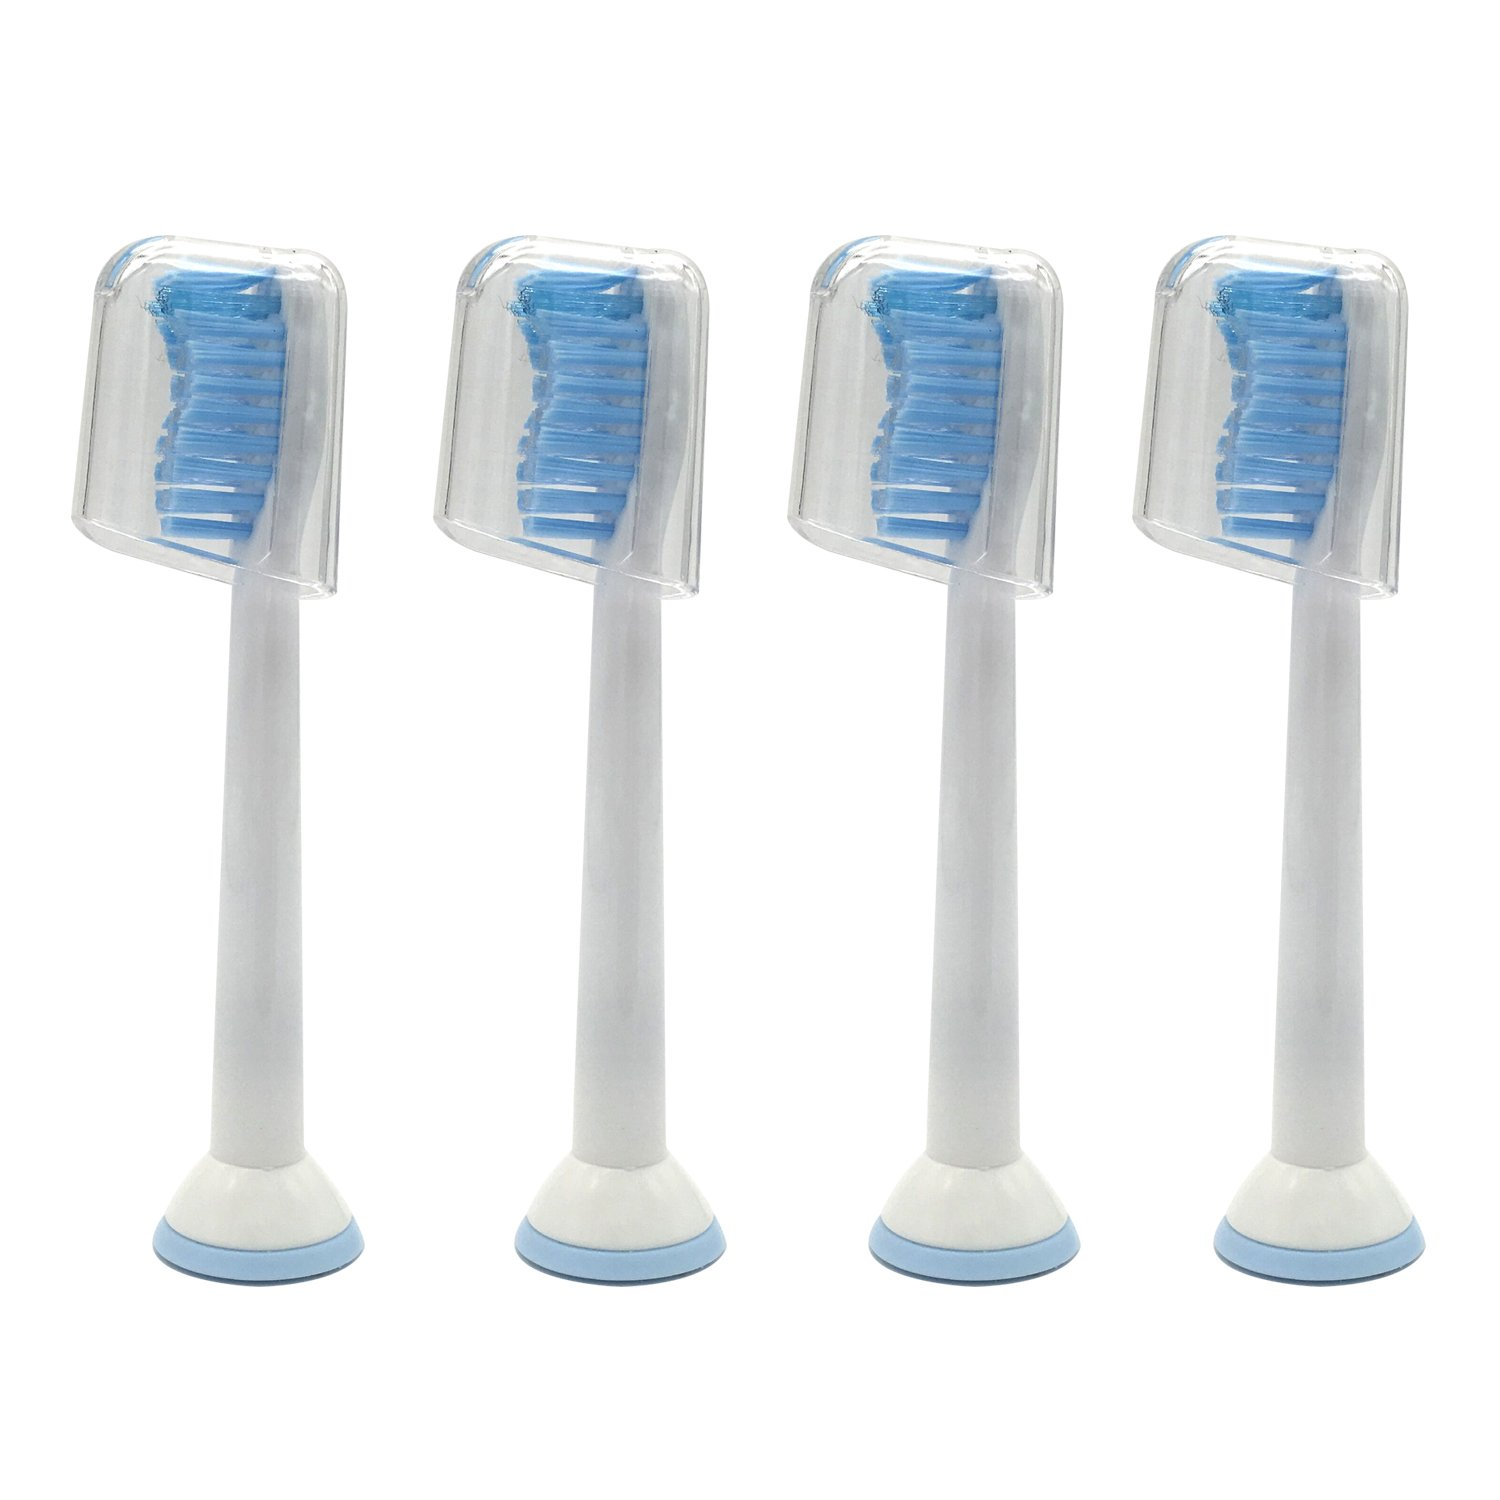 4 pcs (1x4) E-Cron® Toothbrush heads. Philips Sonicare Sensitive Replacement.Spare heads are Fully Compatible With The Following Philips Electric ToothBrush Models: DiamondClean, FlexCare, Platinum, Plus(+), HealthyWhite, 2 Series, EasyClean and PowerUp. P